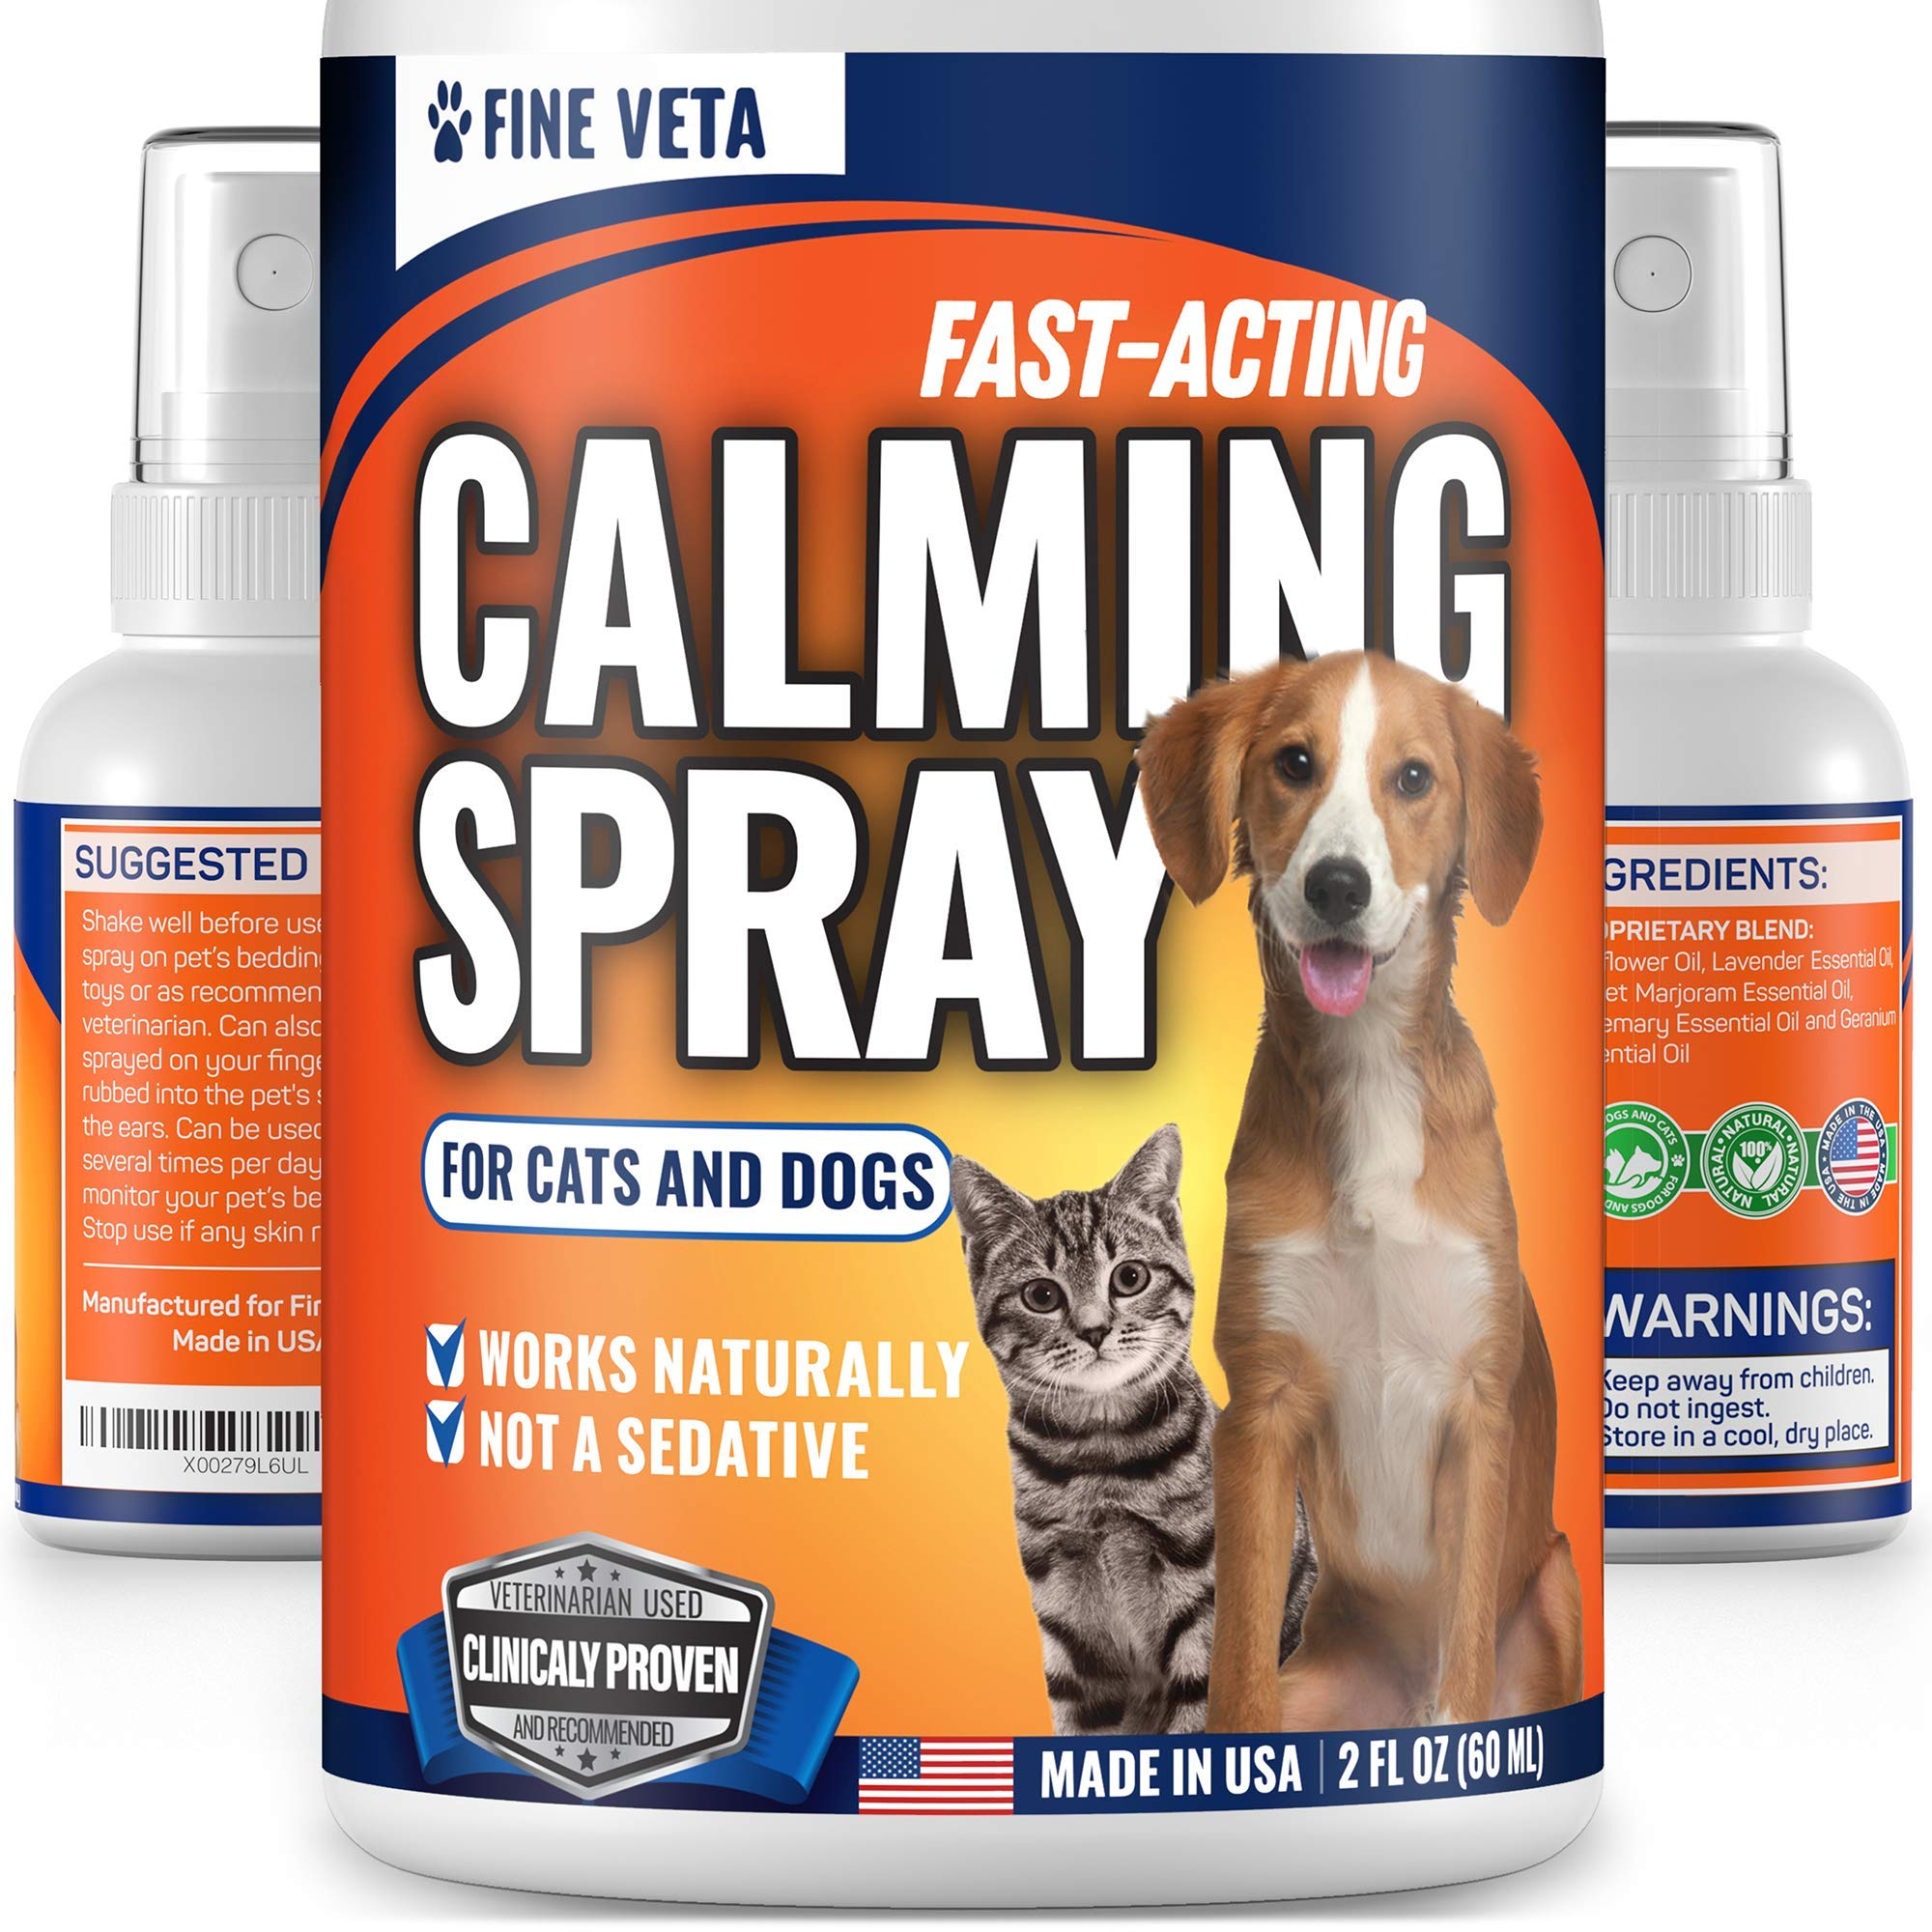 Dog Anxiety Calming Aid - Natural Oil Calming Spray for Dogs and Cats - Made in USA - Relieve Stress, Anxiety, Barking - Works for Vet Visits, Travel, Storms and Fireworks - Long-Lasting Effect - 2oz by Fine Veta